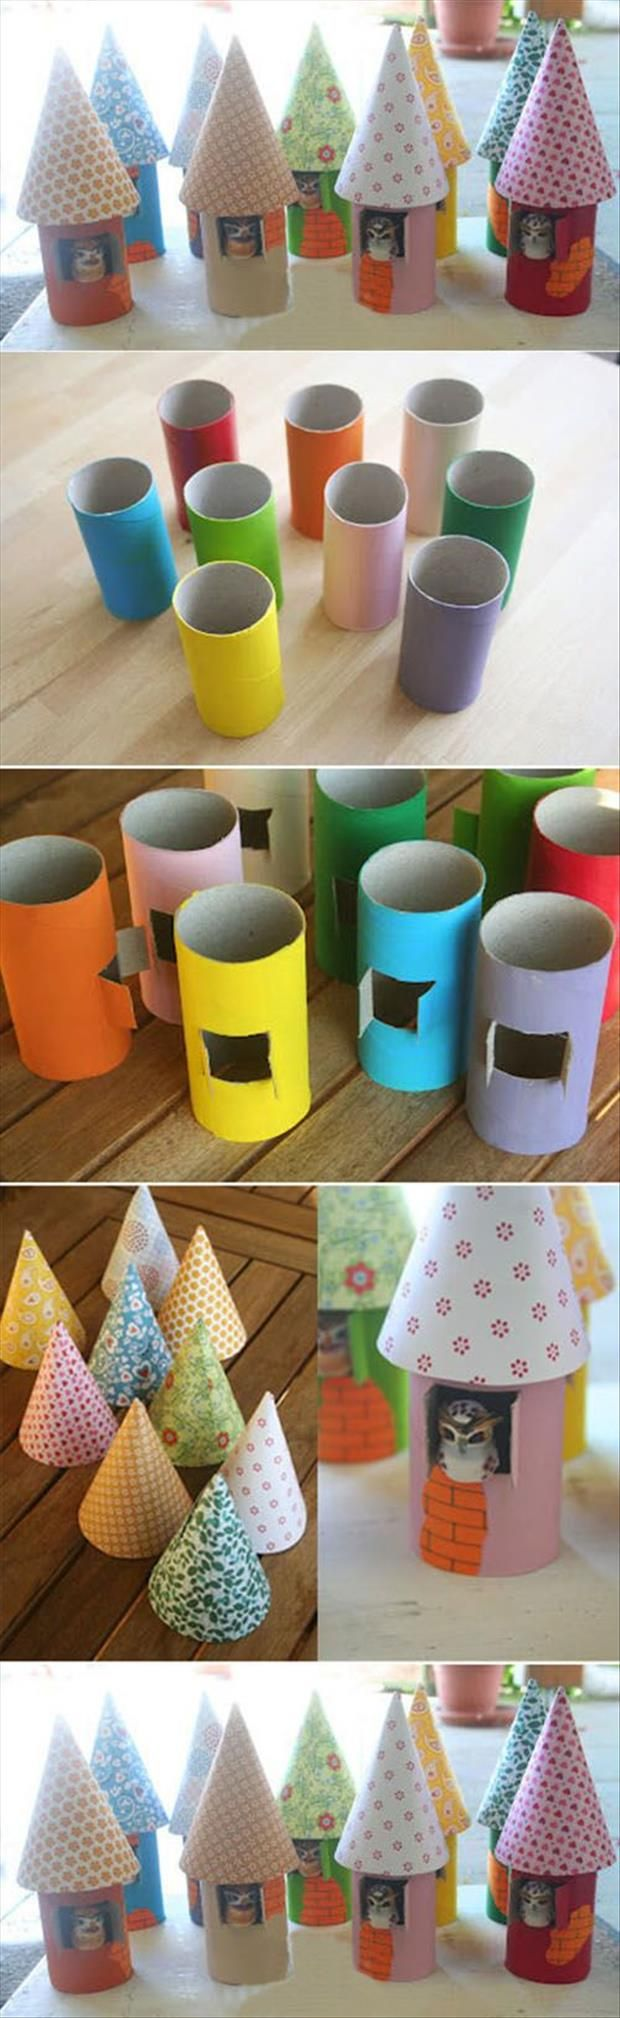 Do It Yourself Craft Ideas Of The Week !evwenslle (20 Pics) (SP. elves)